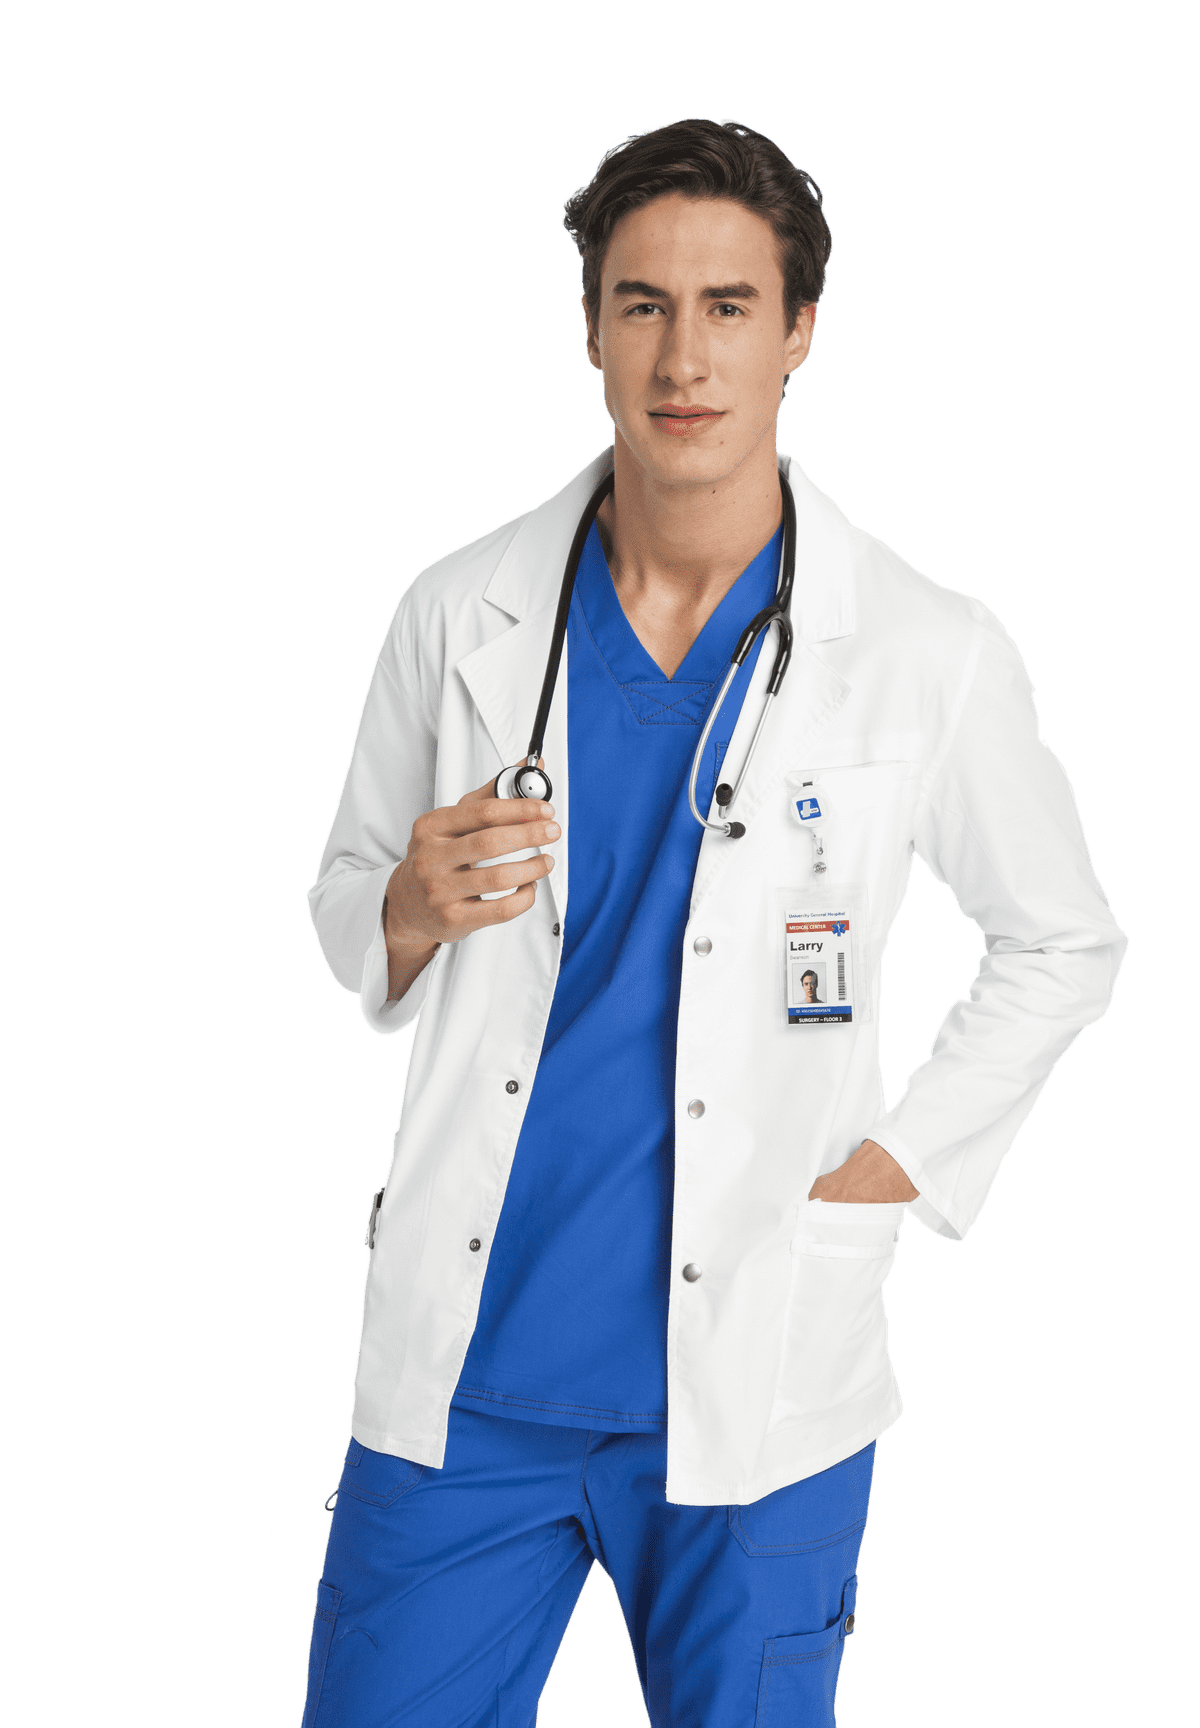 Young Doctor Medical Uniform Png Doctor Outfit Doctor Dress Medical Outfit